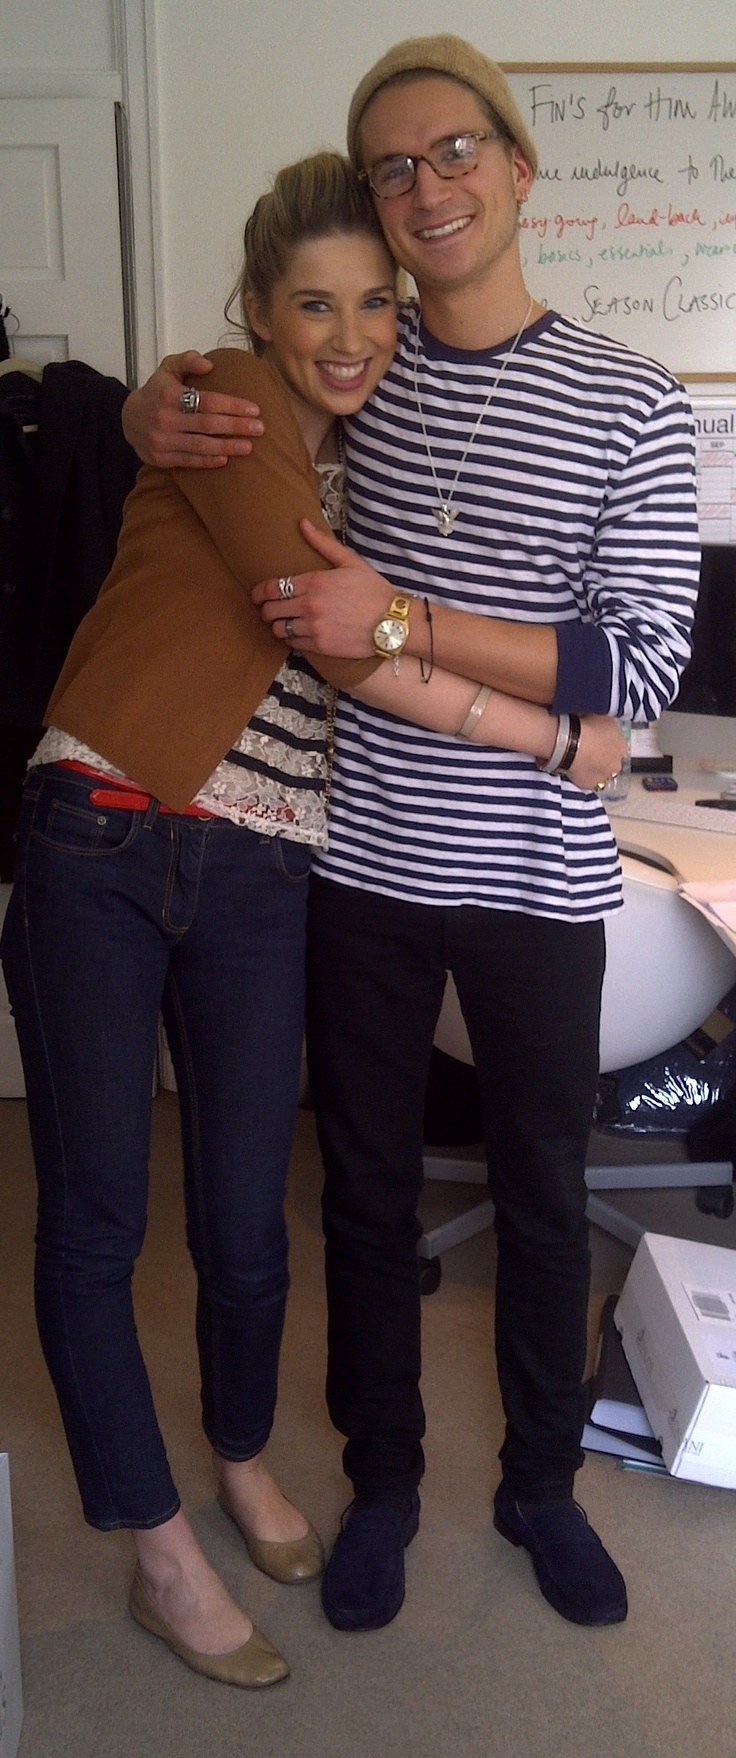 Fin and Oliver Proudlock from Made in Chelsea. He loved our Marshall loafers in Bute Navy.